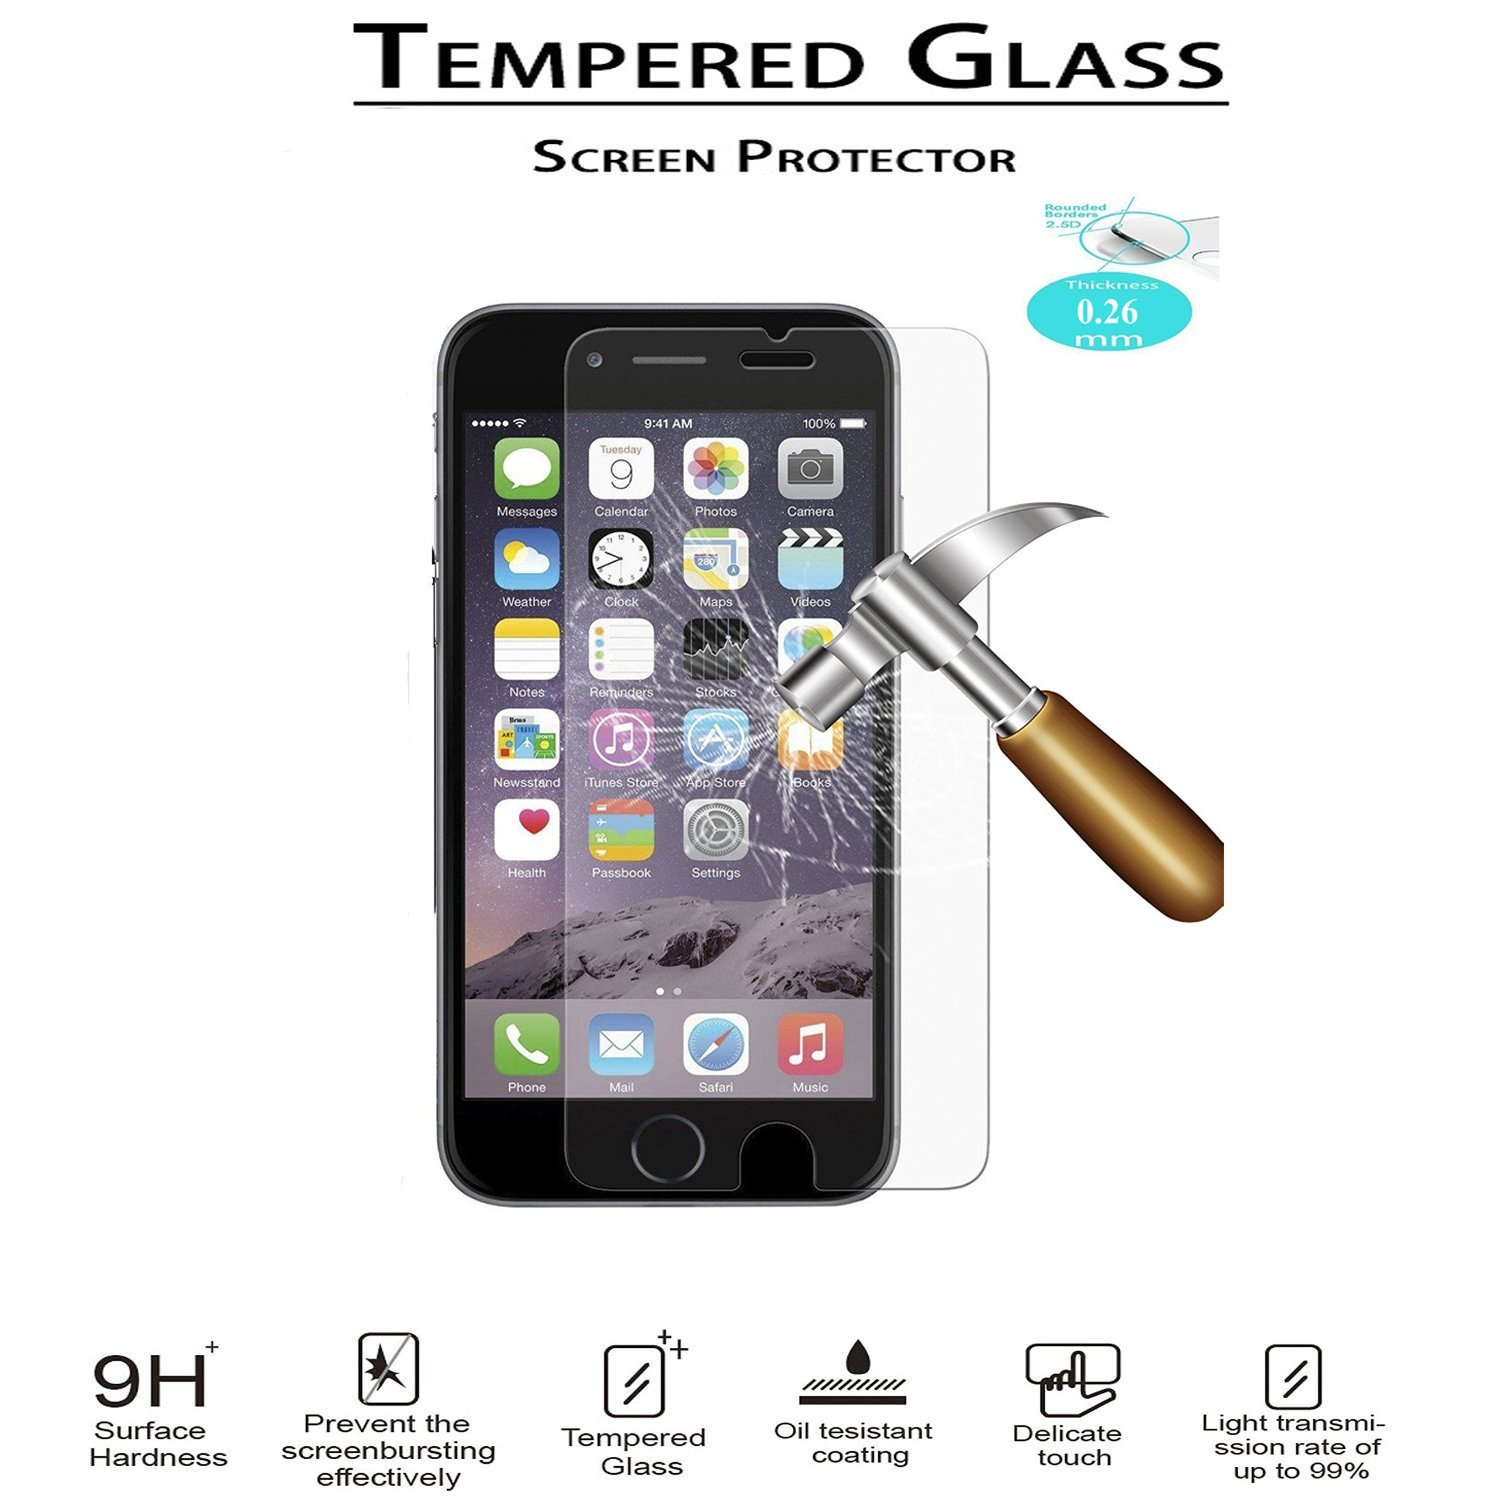 """iPhone 6/6s Screen Protector, iPhone 6s 4.7"""" Screen Protector, Speedtek TEMPERED GLASS Screen Protector for Apple iPhone 6/6s 4.7"""" - Crystal Clear - 9H Hardness Scratch [1-Pack,0.26mm,2.5D Rounded Edges]"""